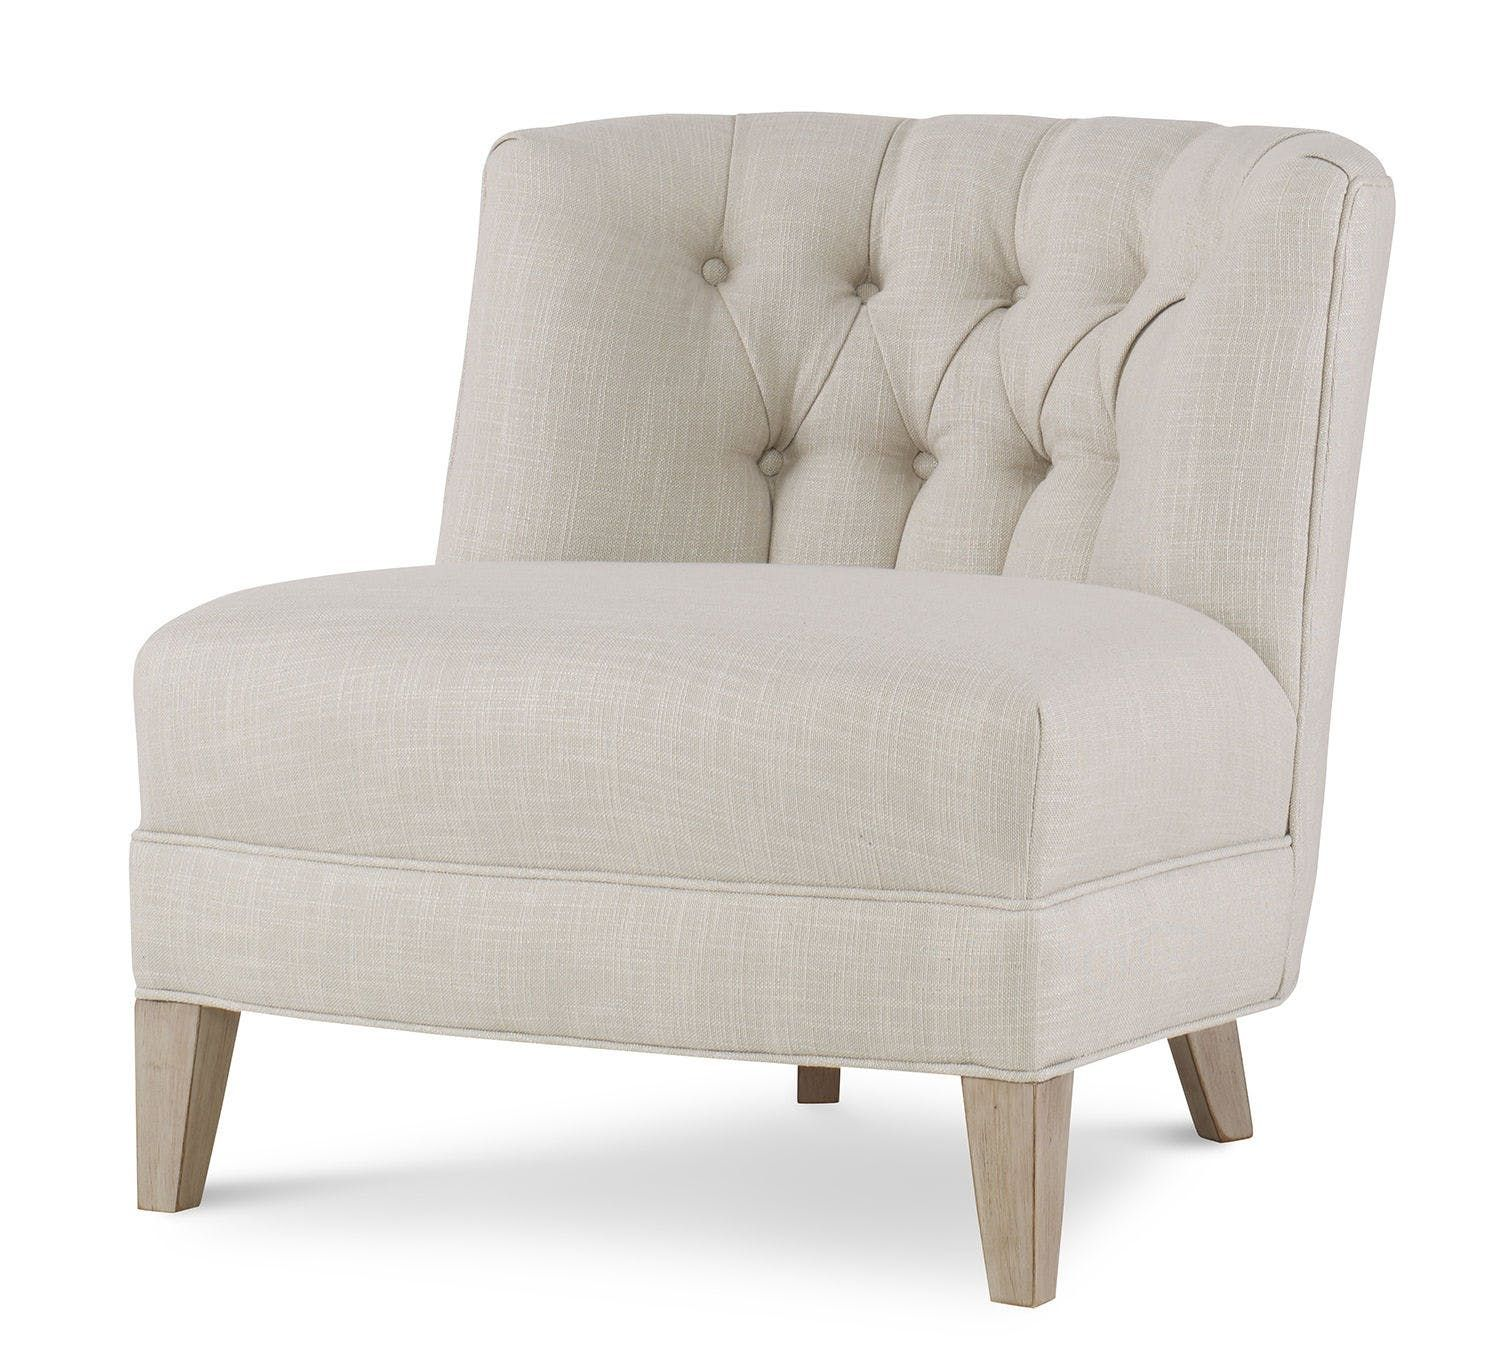 Lee Jofa Darcy Chair Unskirted H3817 20